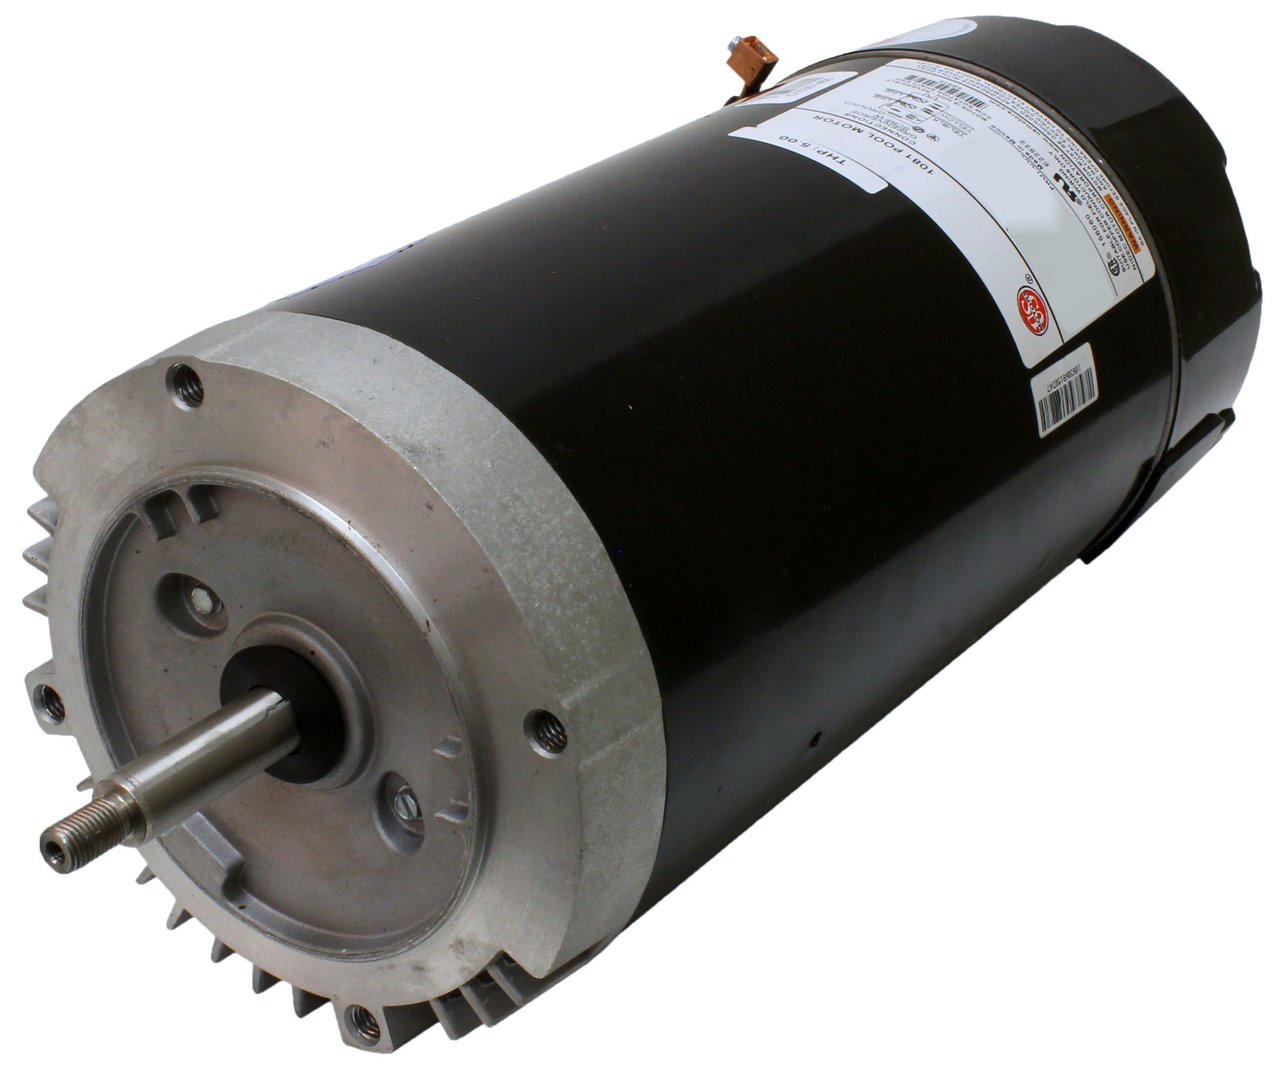 1 hp 3450 rpm 56j frame 115 230v switchless swimming pool pump motor us electric [ 1280 x 1083 Pixel ]